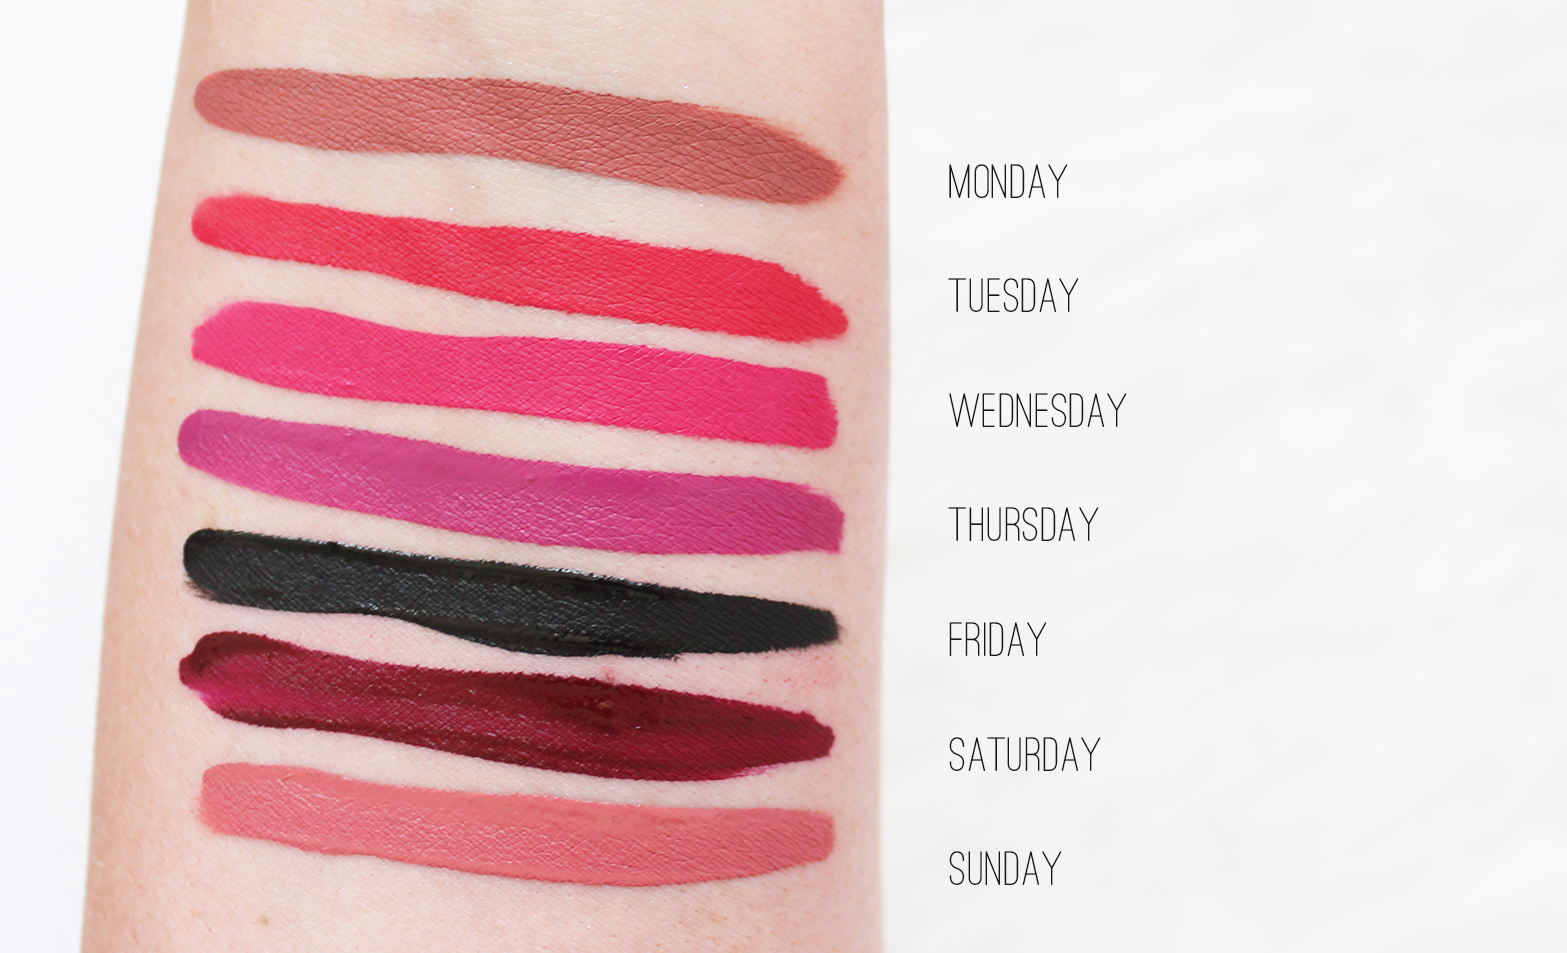 COLOURPOP COSMETICS | Haul - Moment of Weekness Set, Ultra Glossy Lips + More - Swatches - CassandraMyee